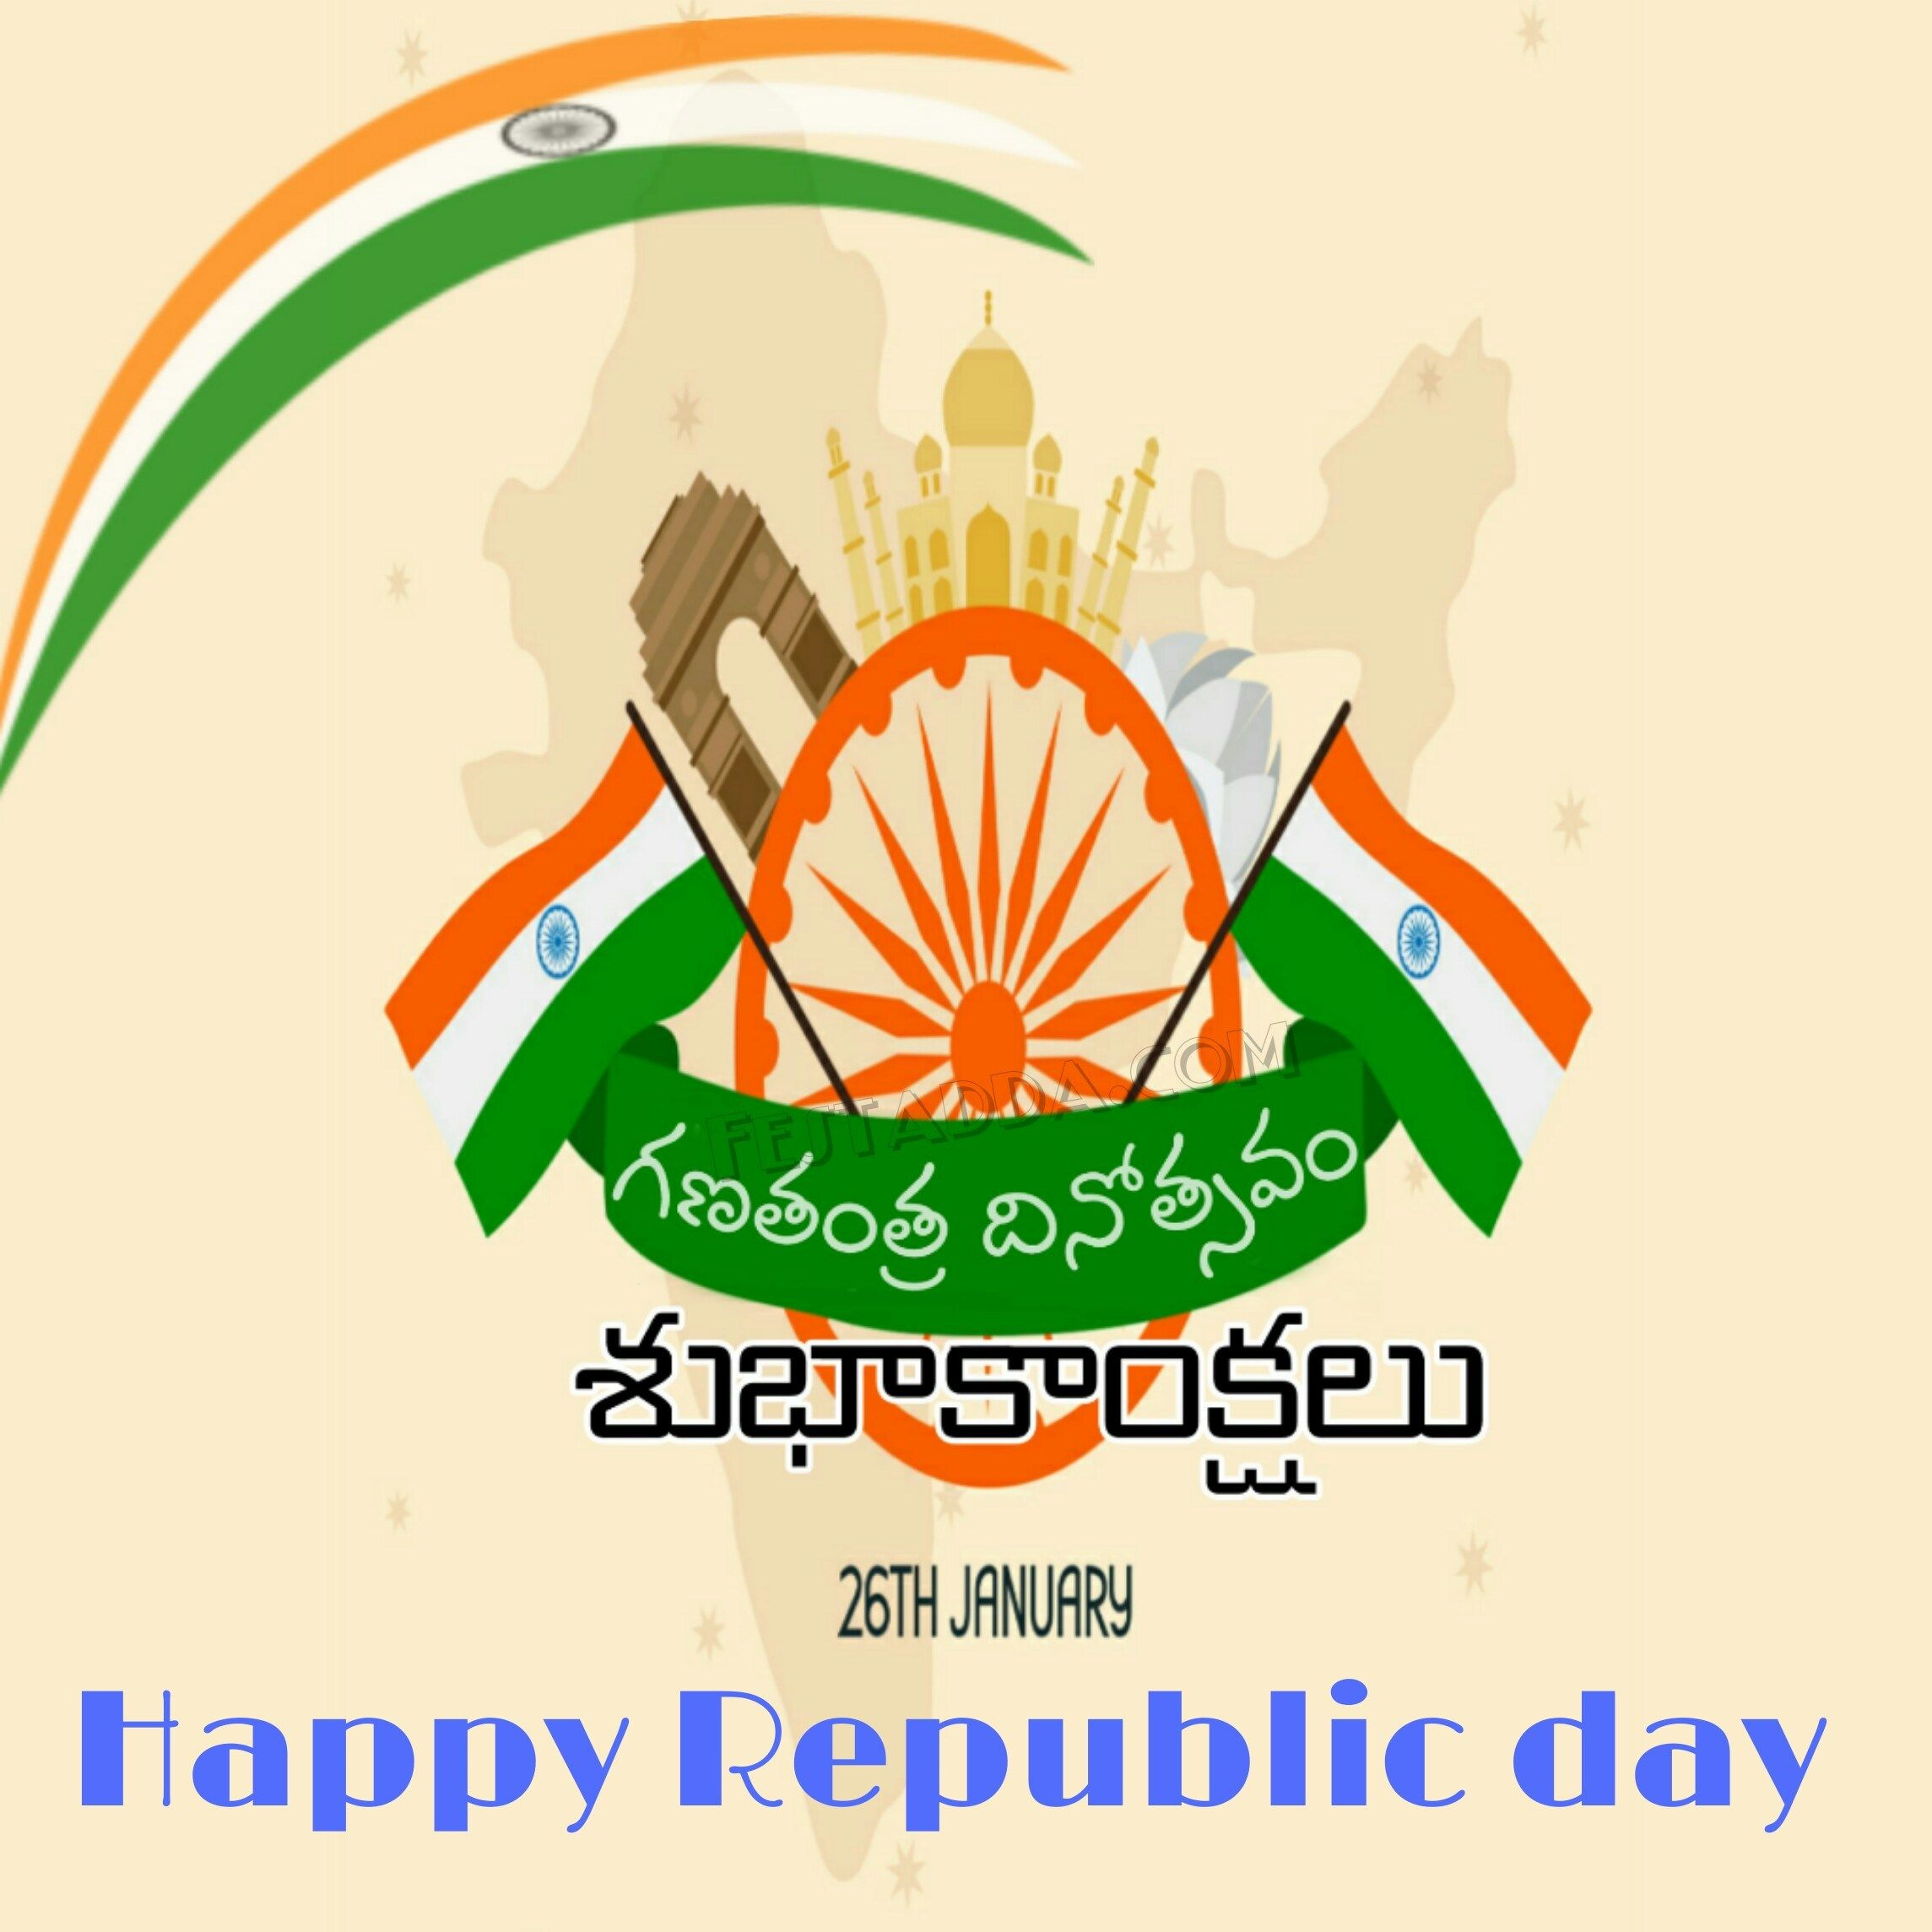 Republic Day Photos Images Wallpapers Download Republic Day Quotes Gif Republic Day Photos Happy republic day january 26 2021